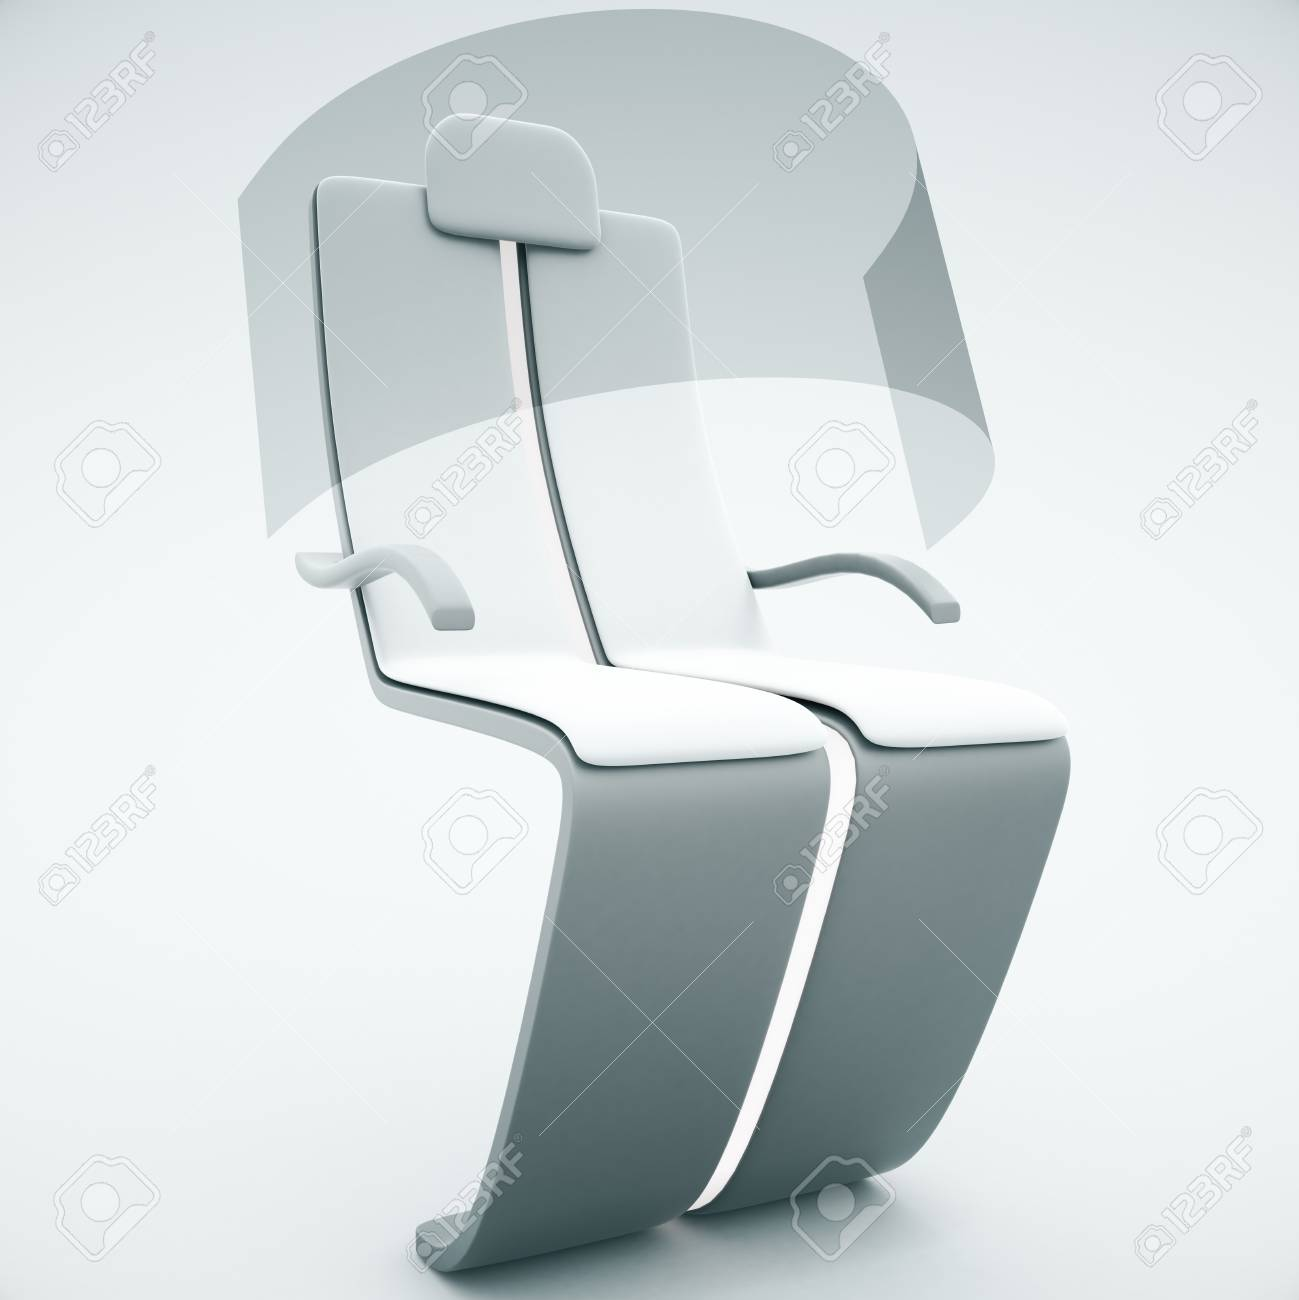 Superb Sideview Of Futuristic Chair With Shield On Light Background. 3D Rendering  Stock Photo   55983198